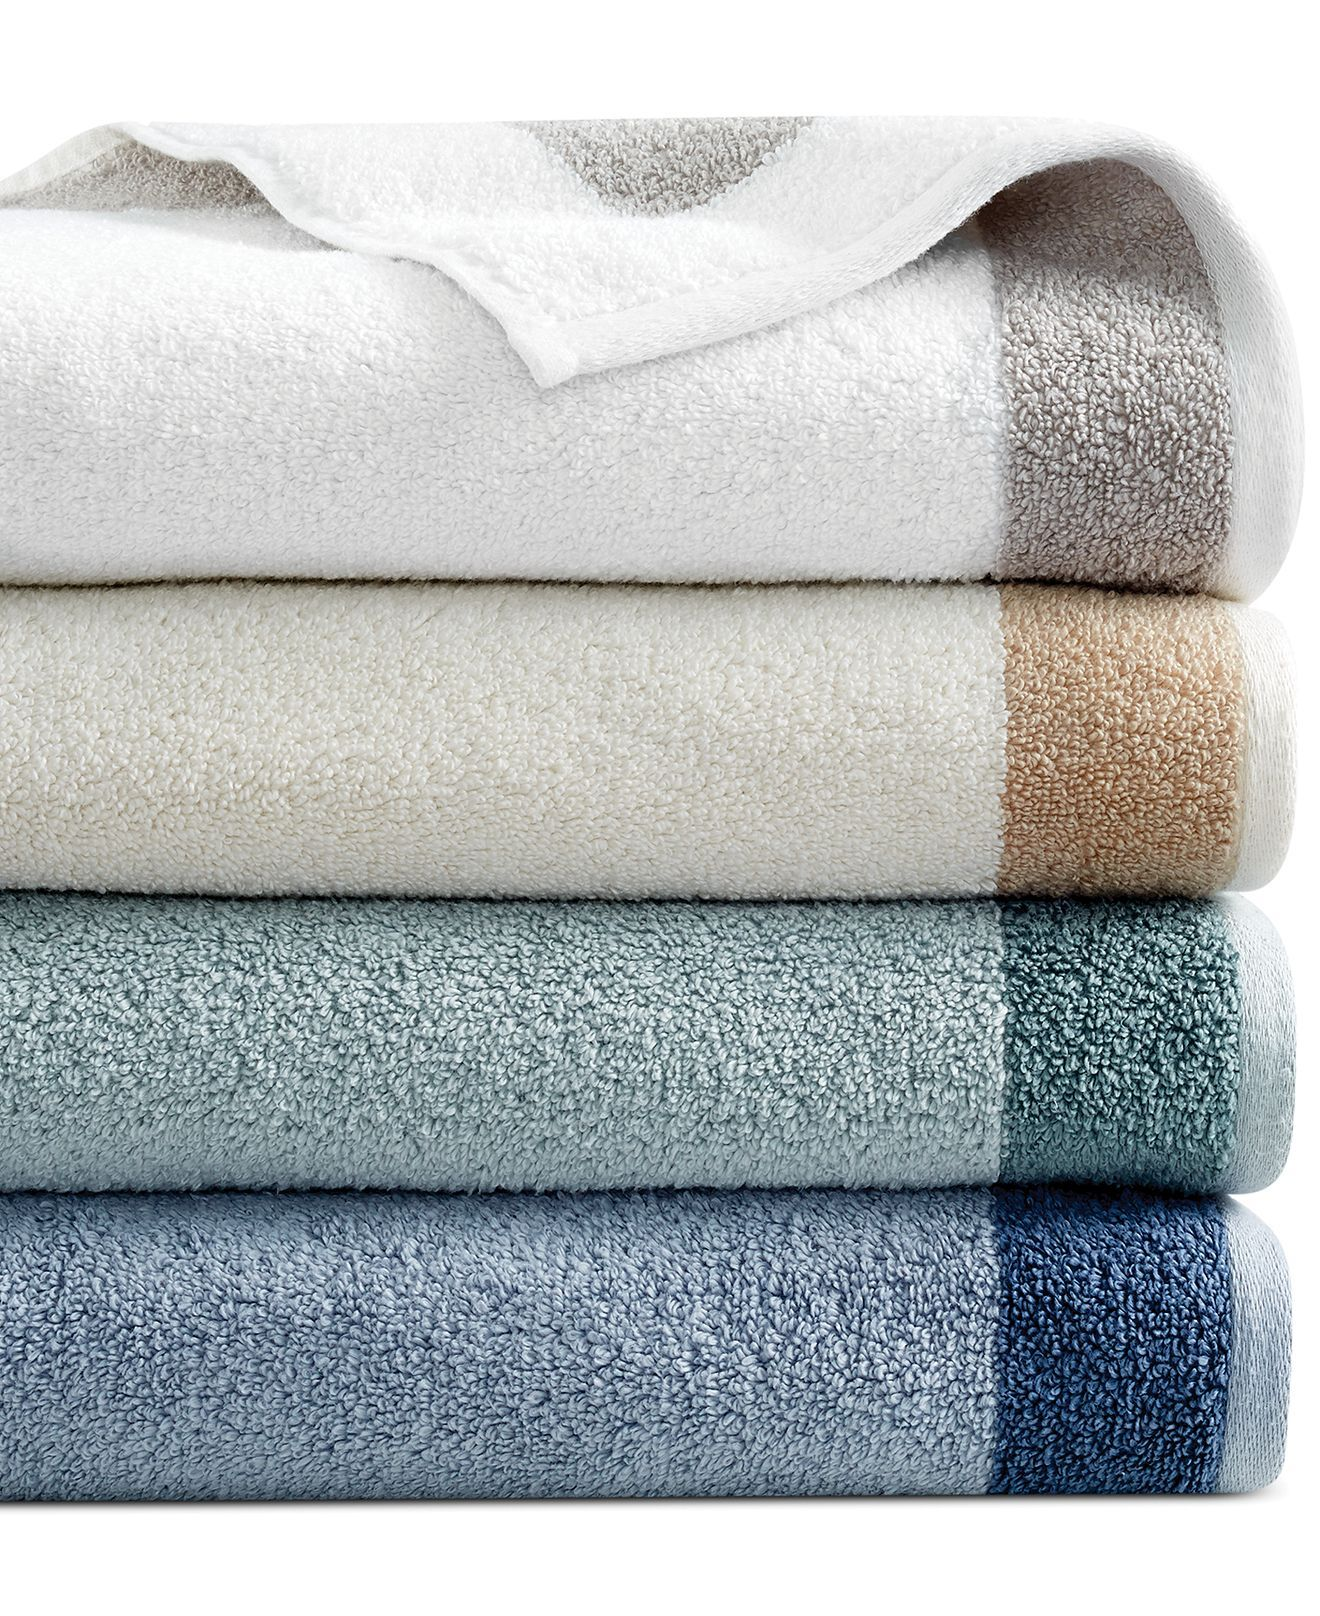 Hotel Collection Reversible Bath Towel